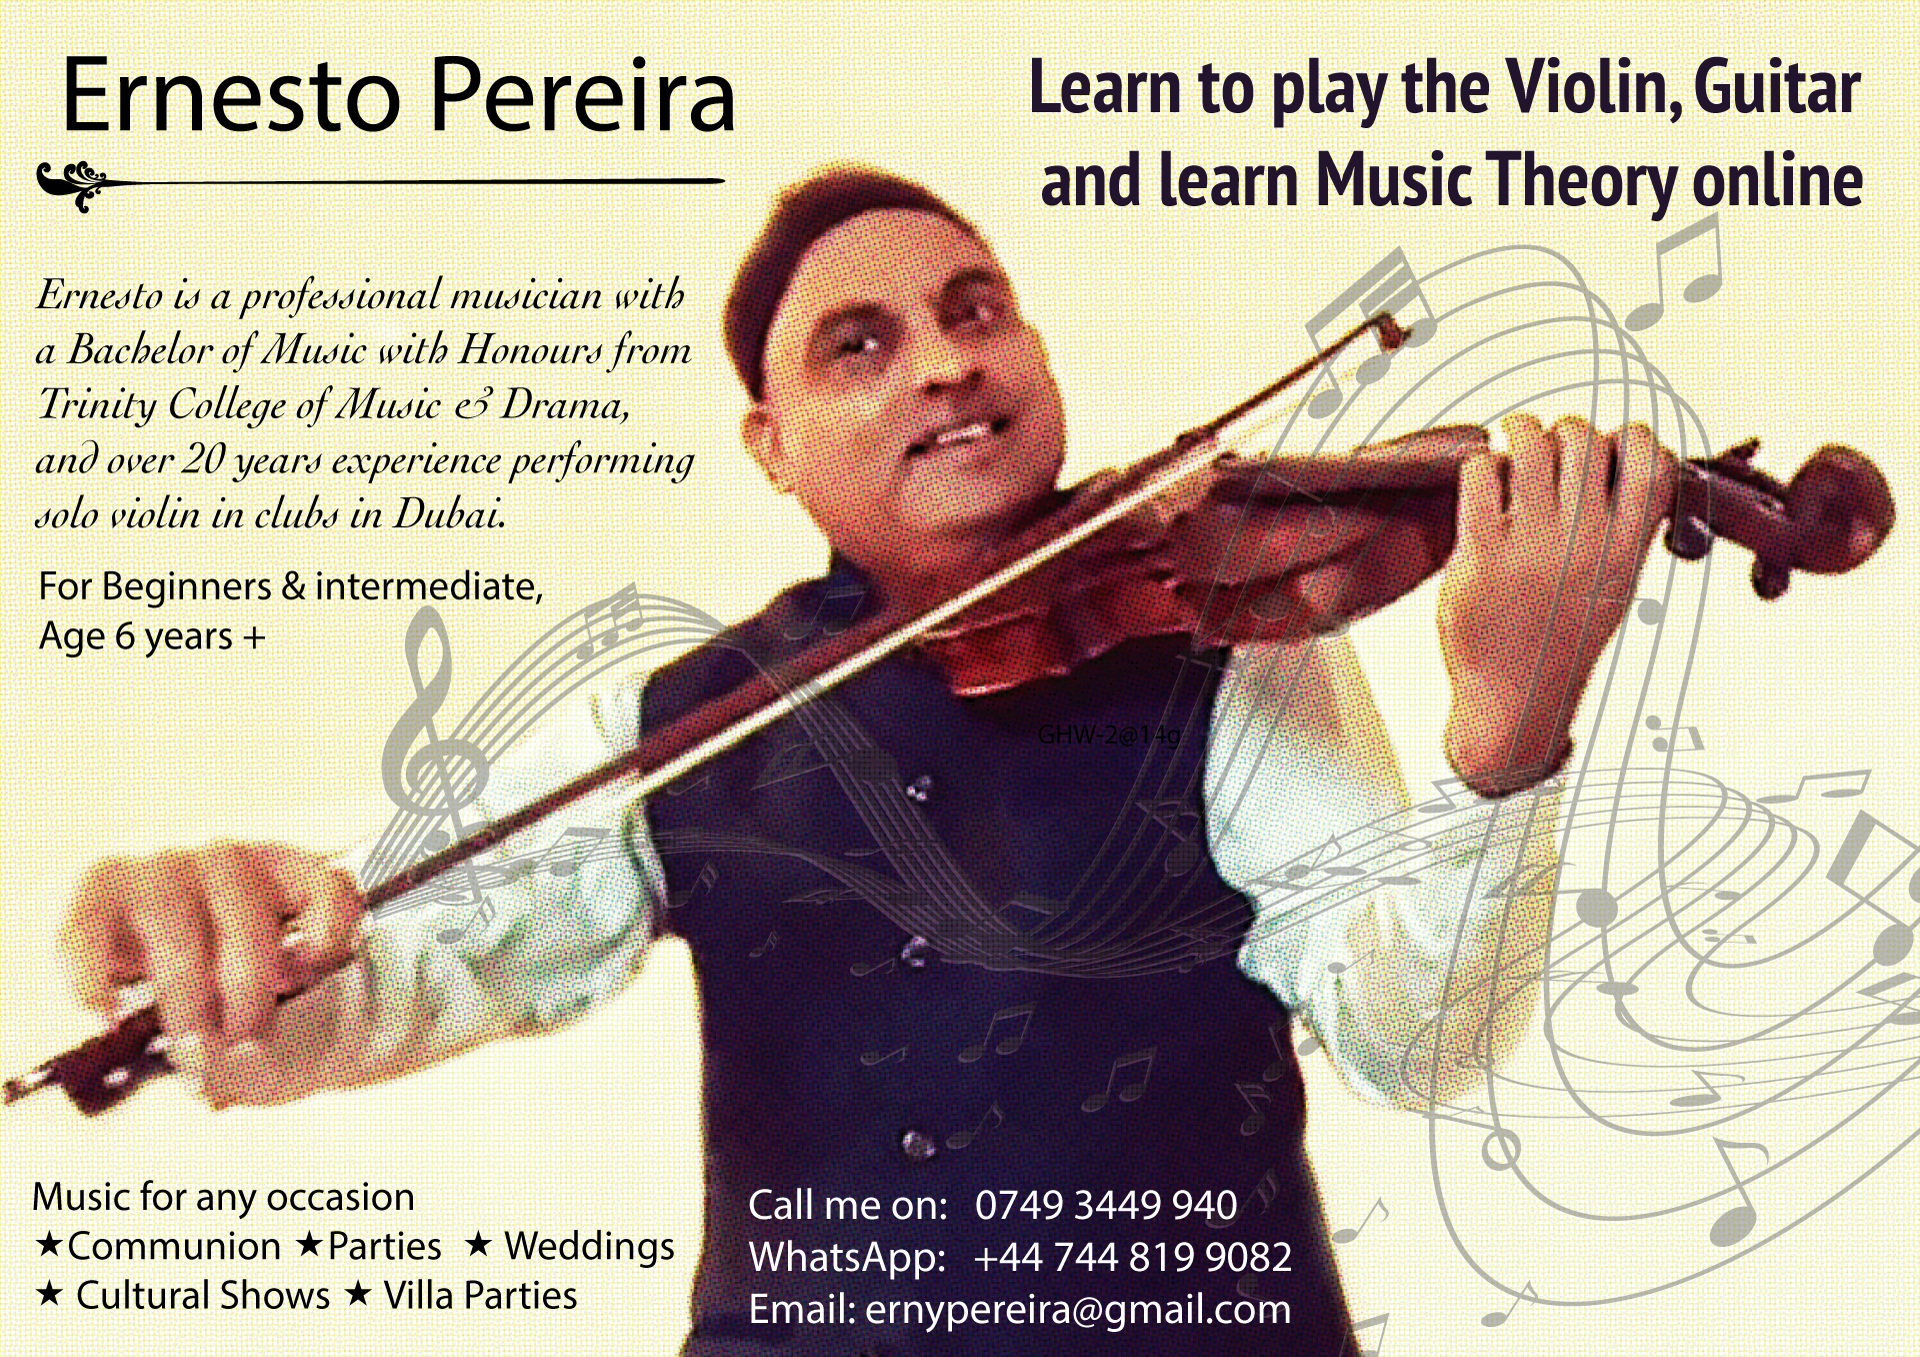 Learn violin, guitar and music notation online with Ernesto